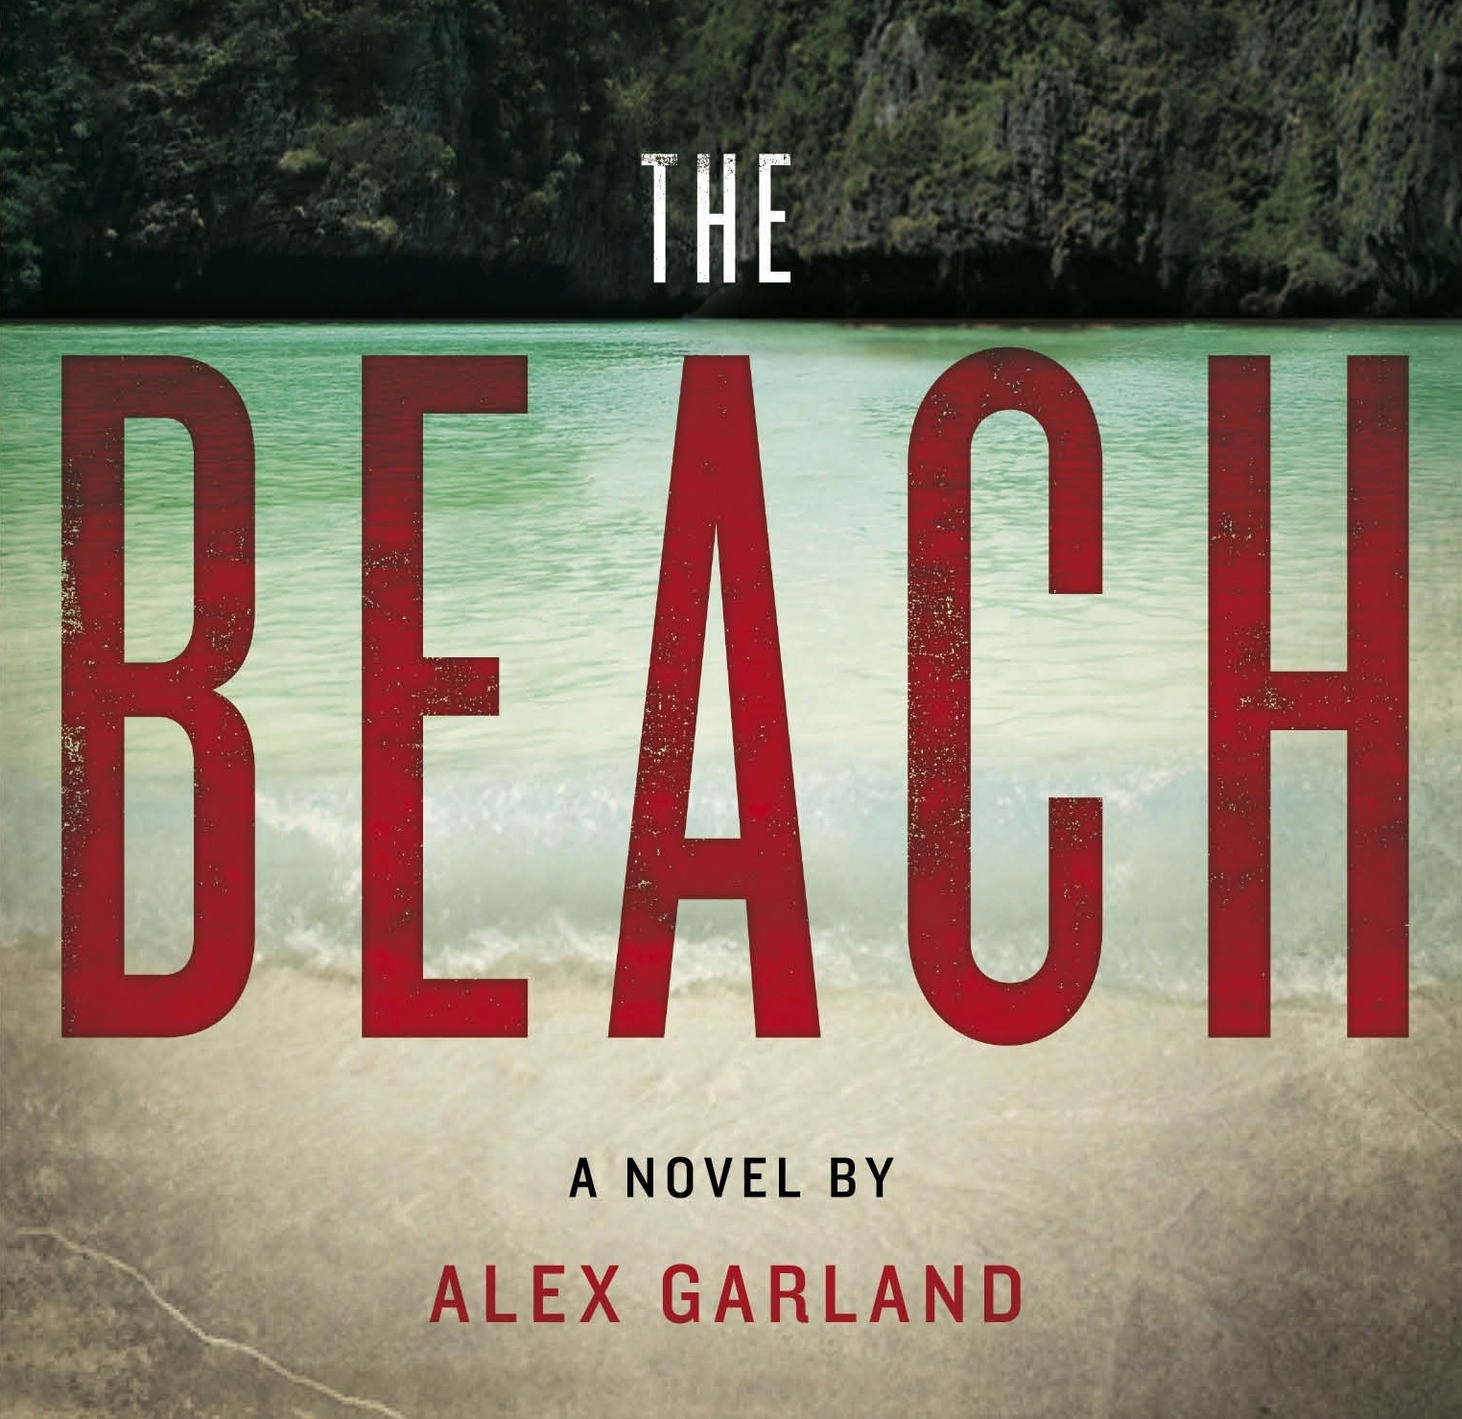 the-beach-book-cover-01